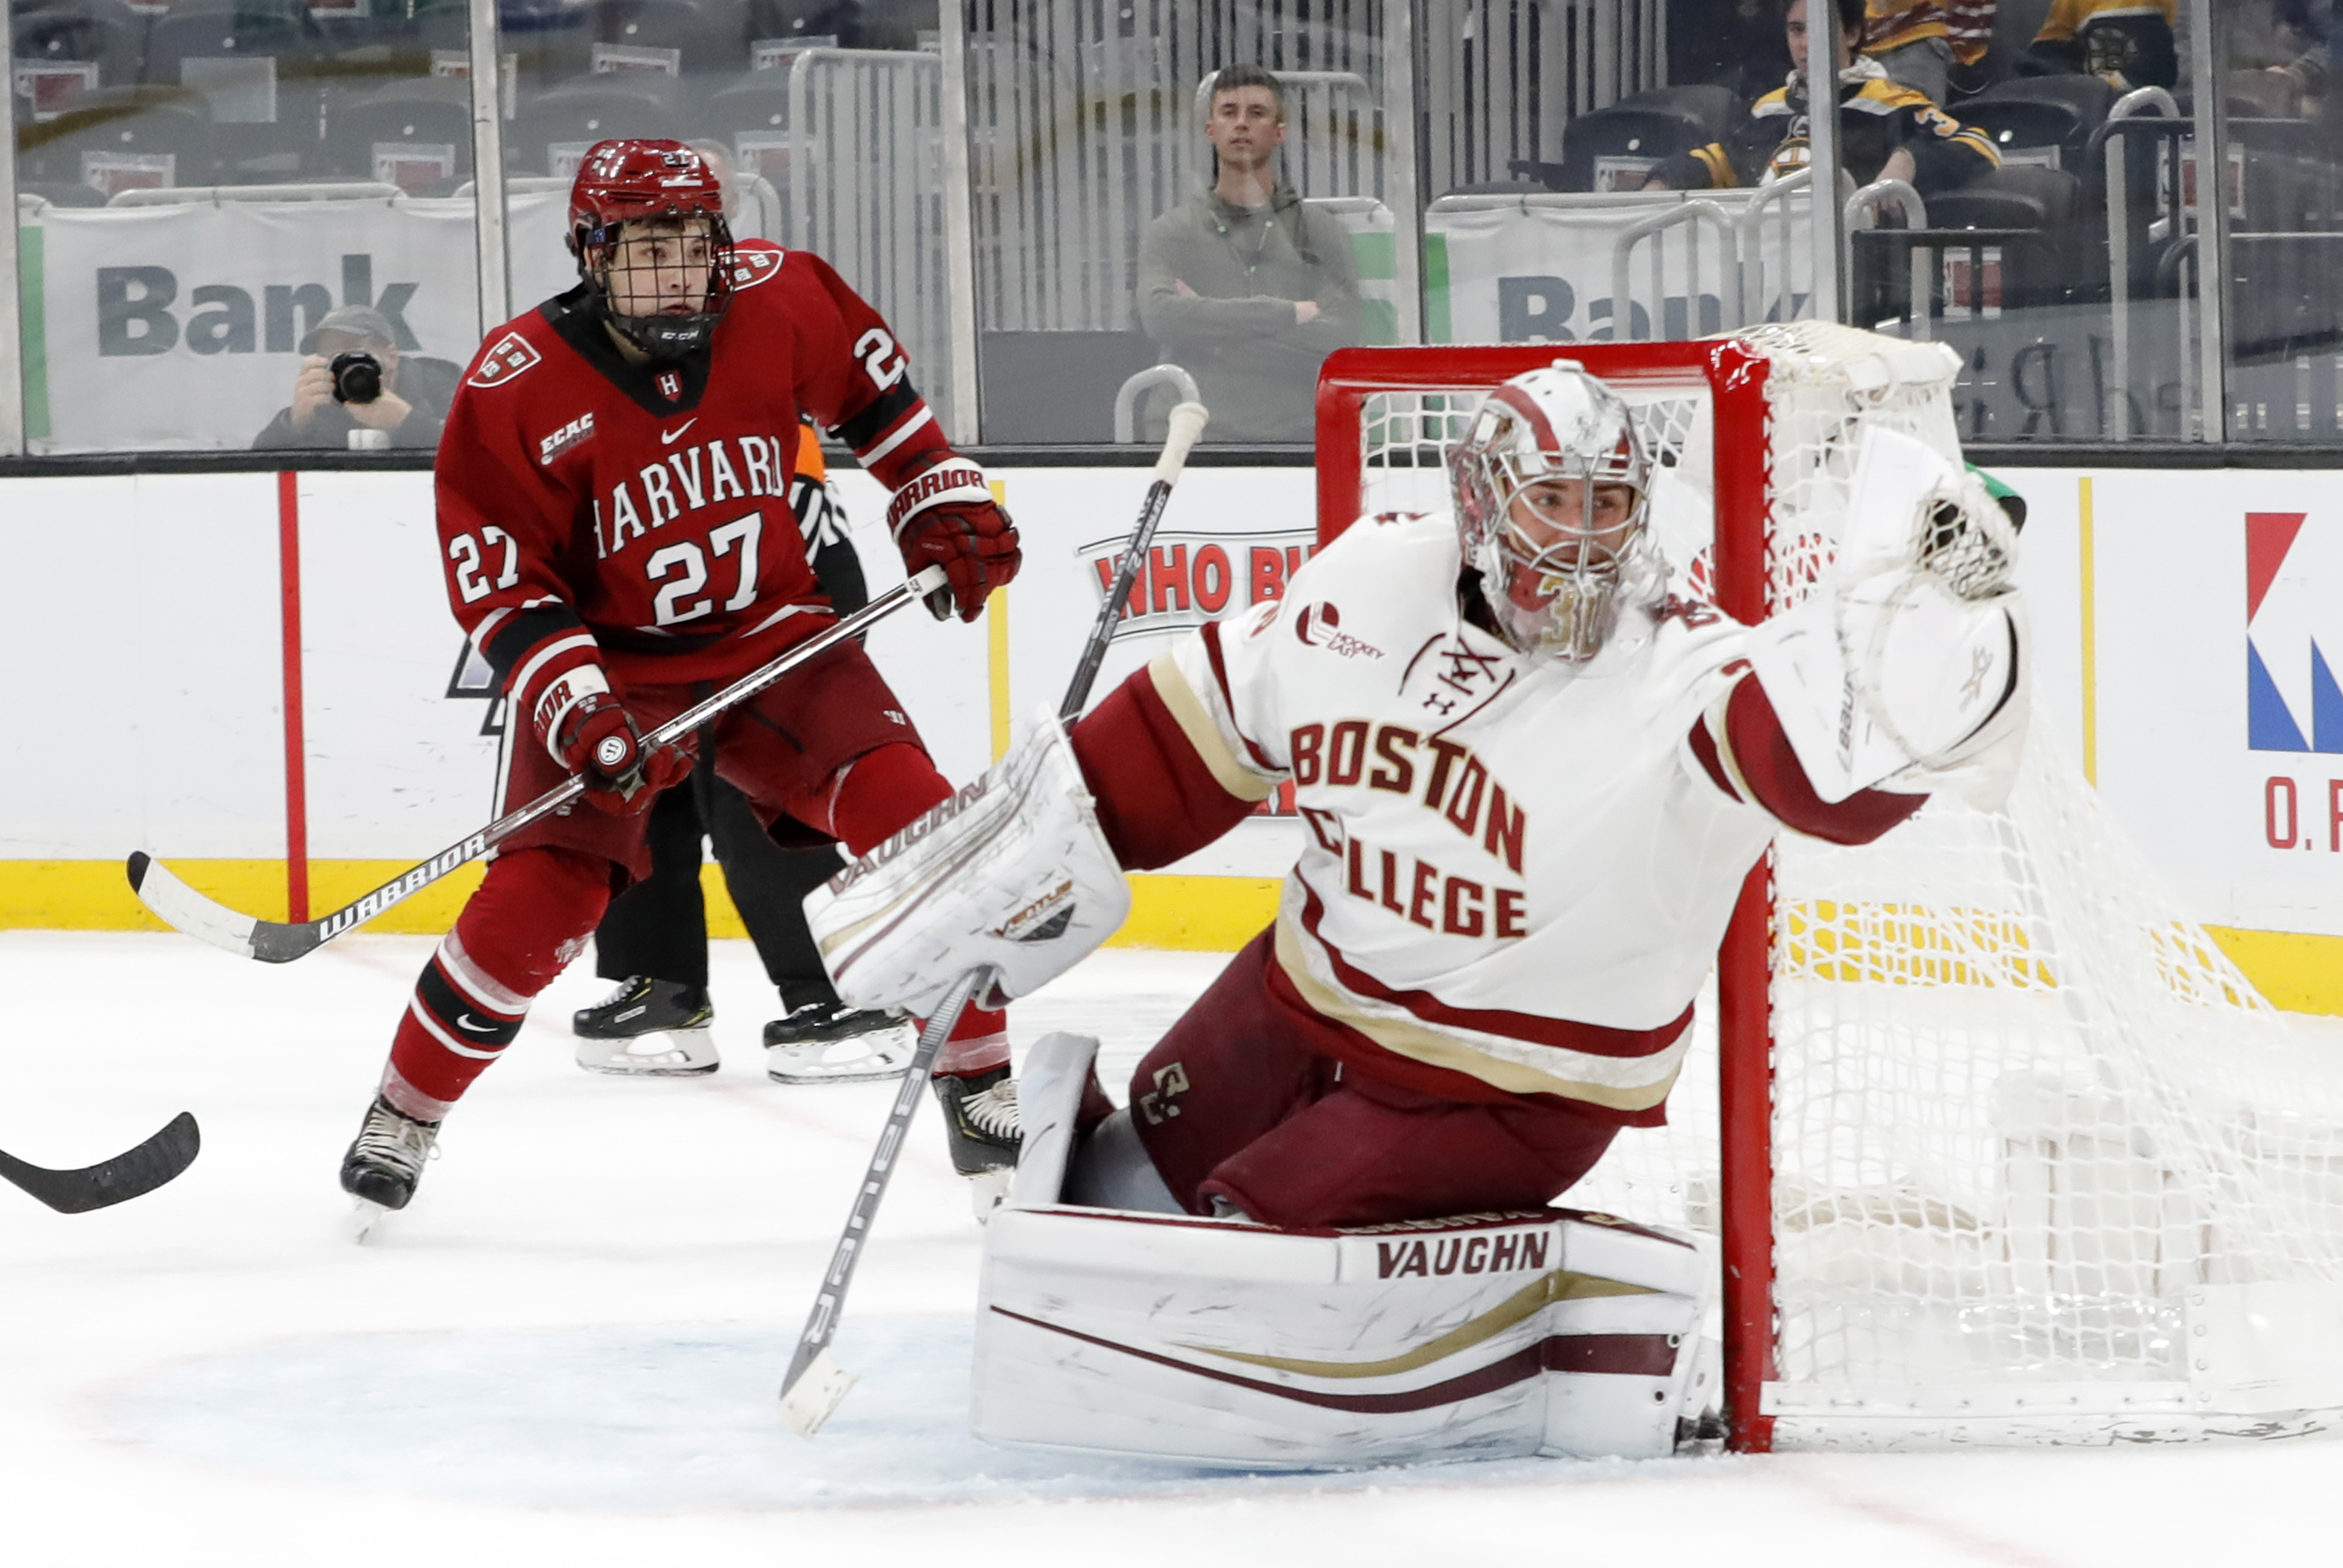 COLLEGE HOCKEY: FEB 10 Beanpot Tournament - Consolation Game - Boston College v Harvard